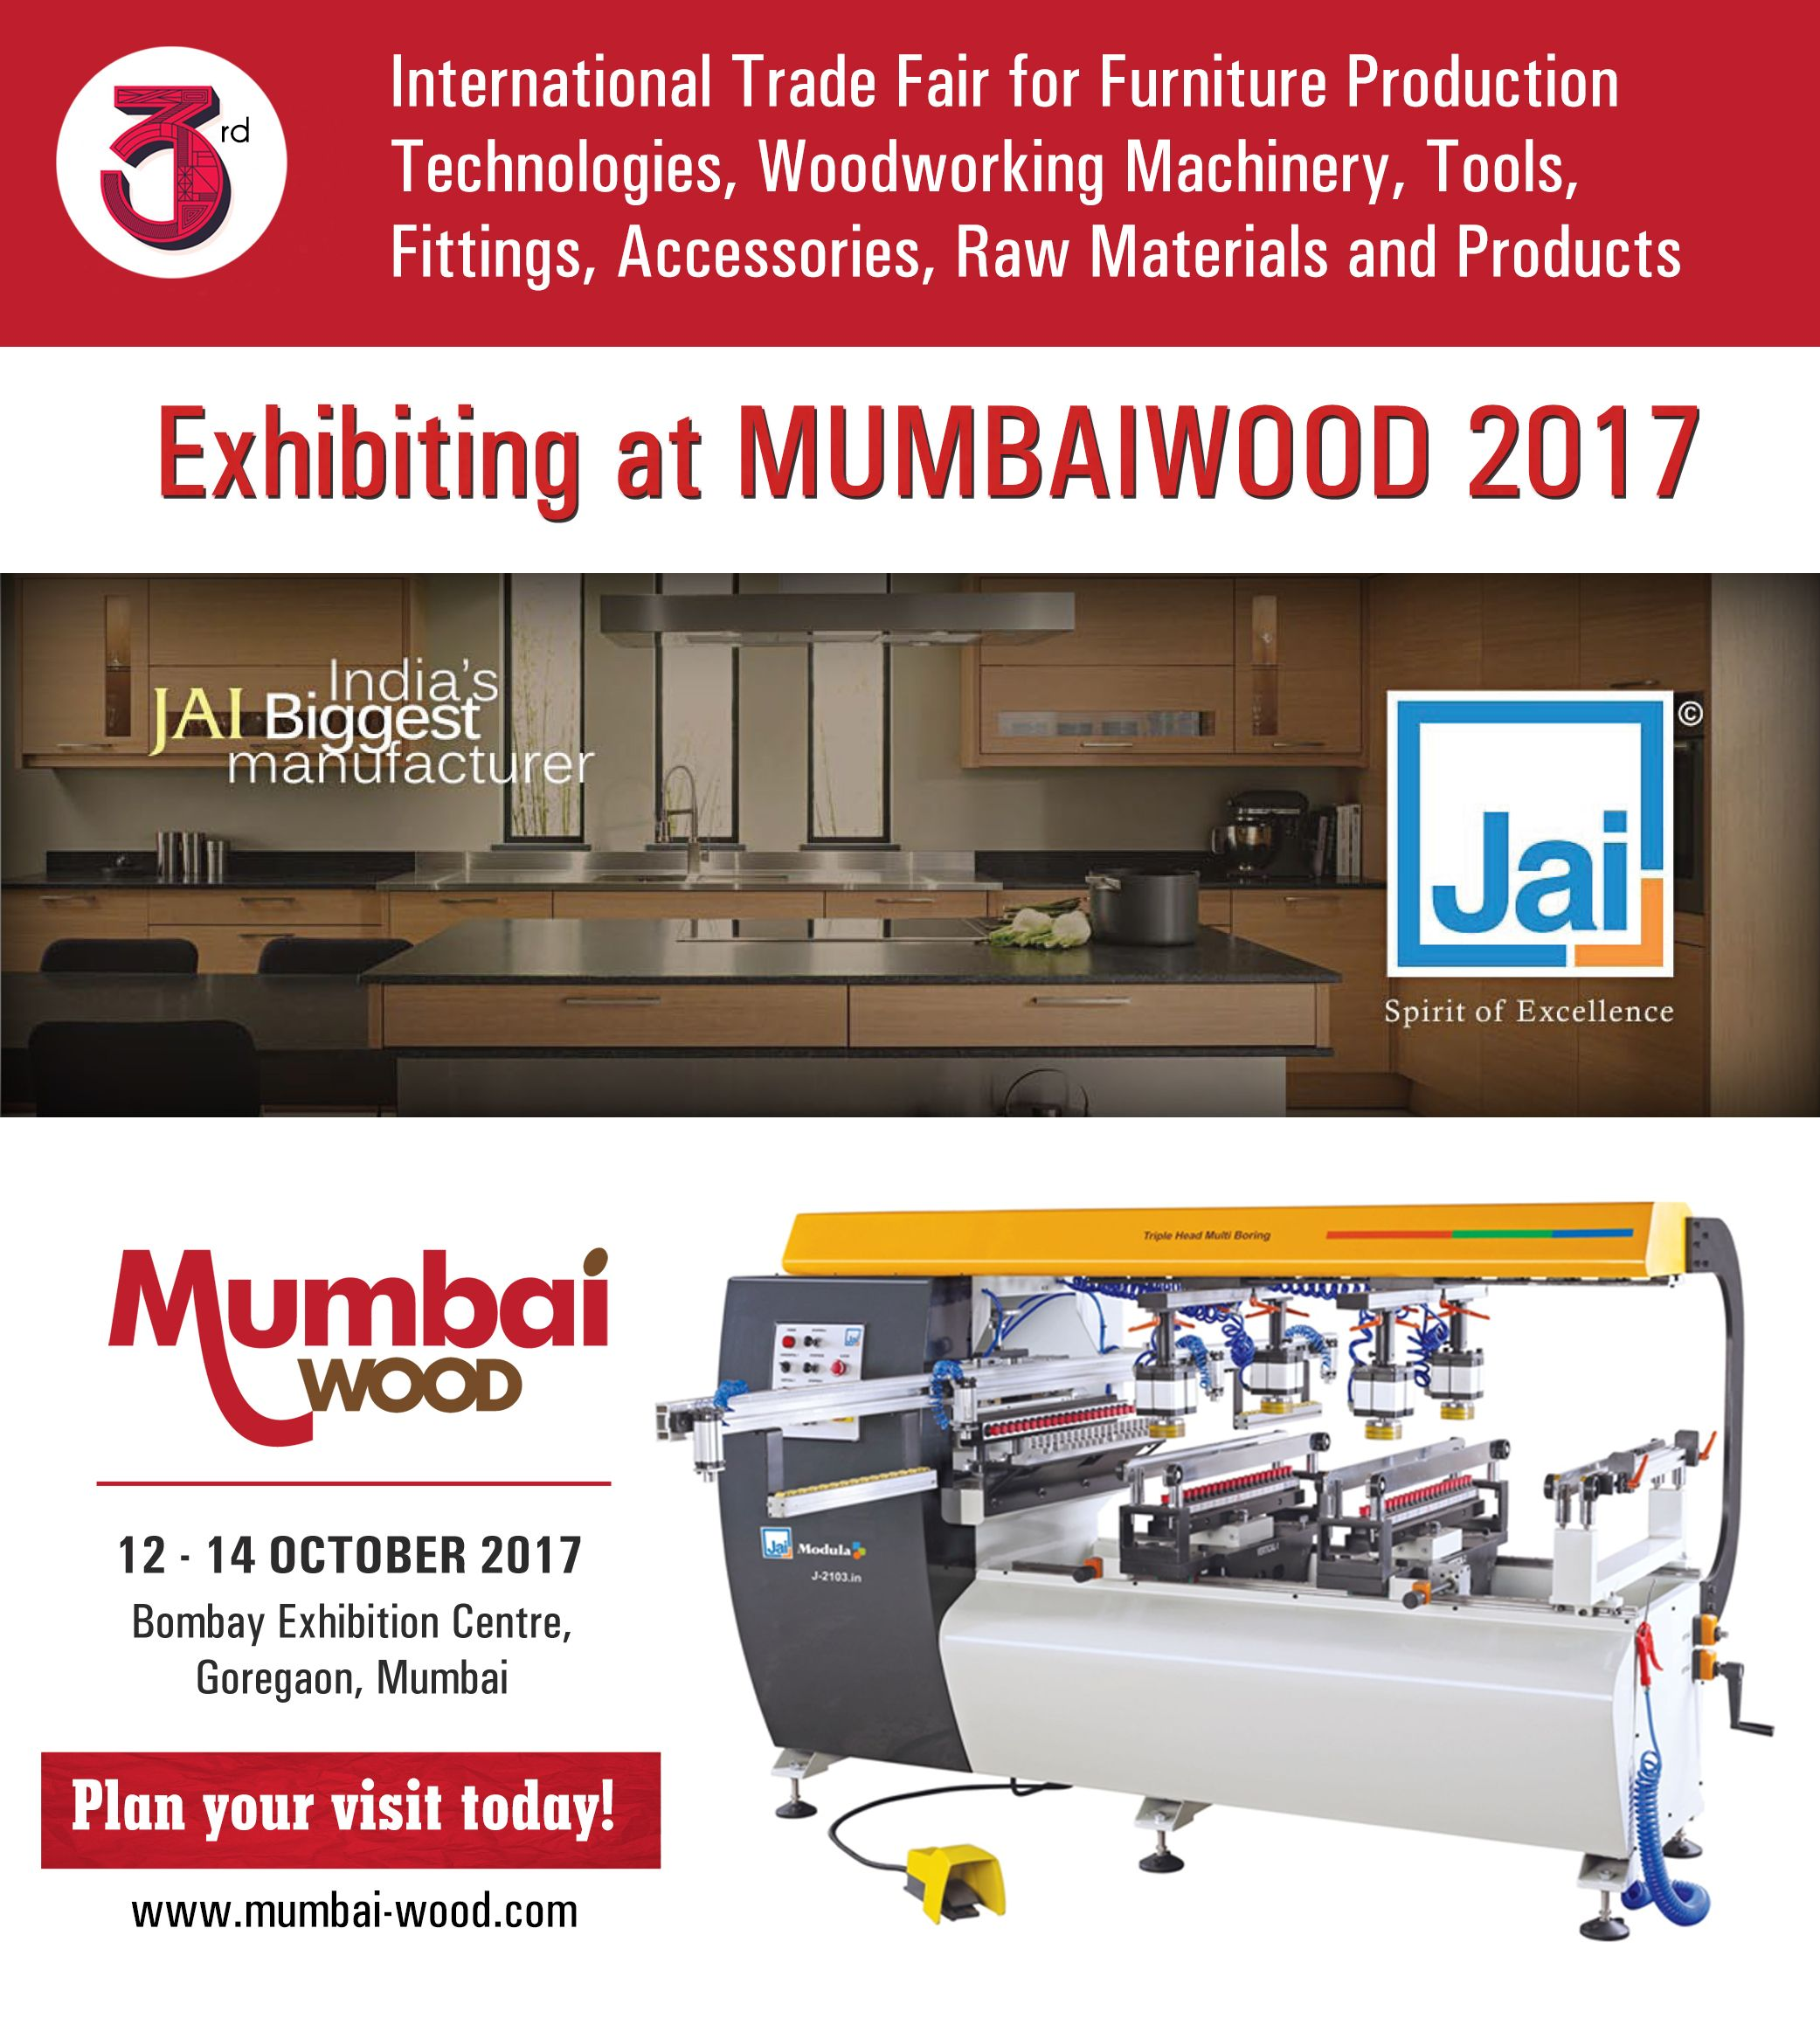 Pin By Indiawood On Mumbaiwood 2017 Pinterest Raw Materials